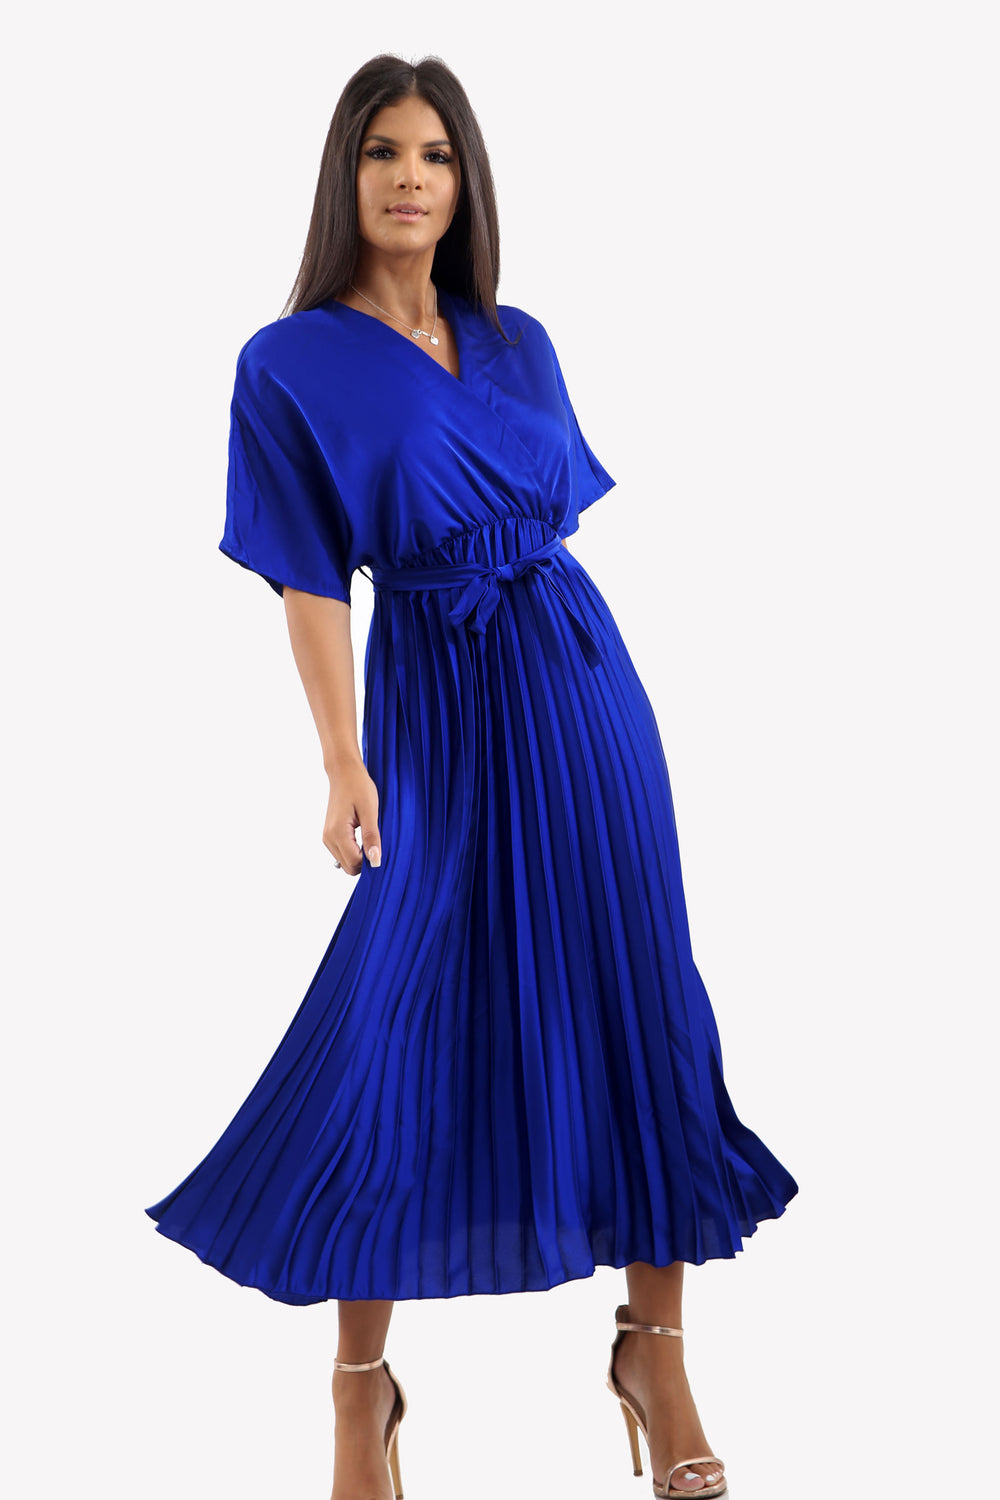 Satin Batwing Pleated Maxi Dress in Royal Blue